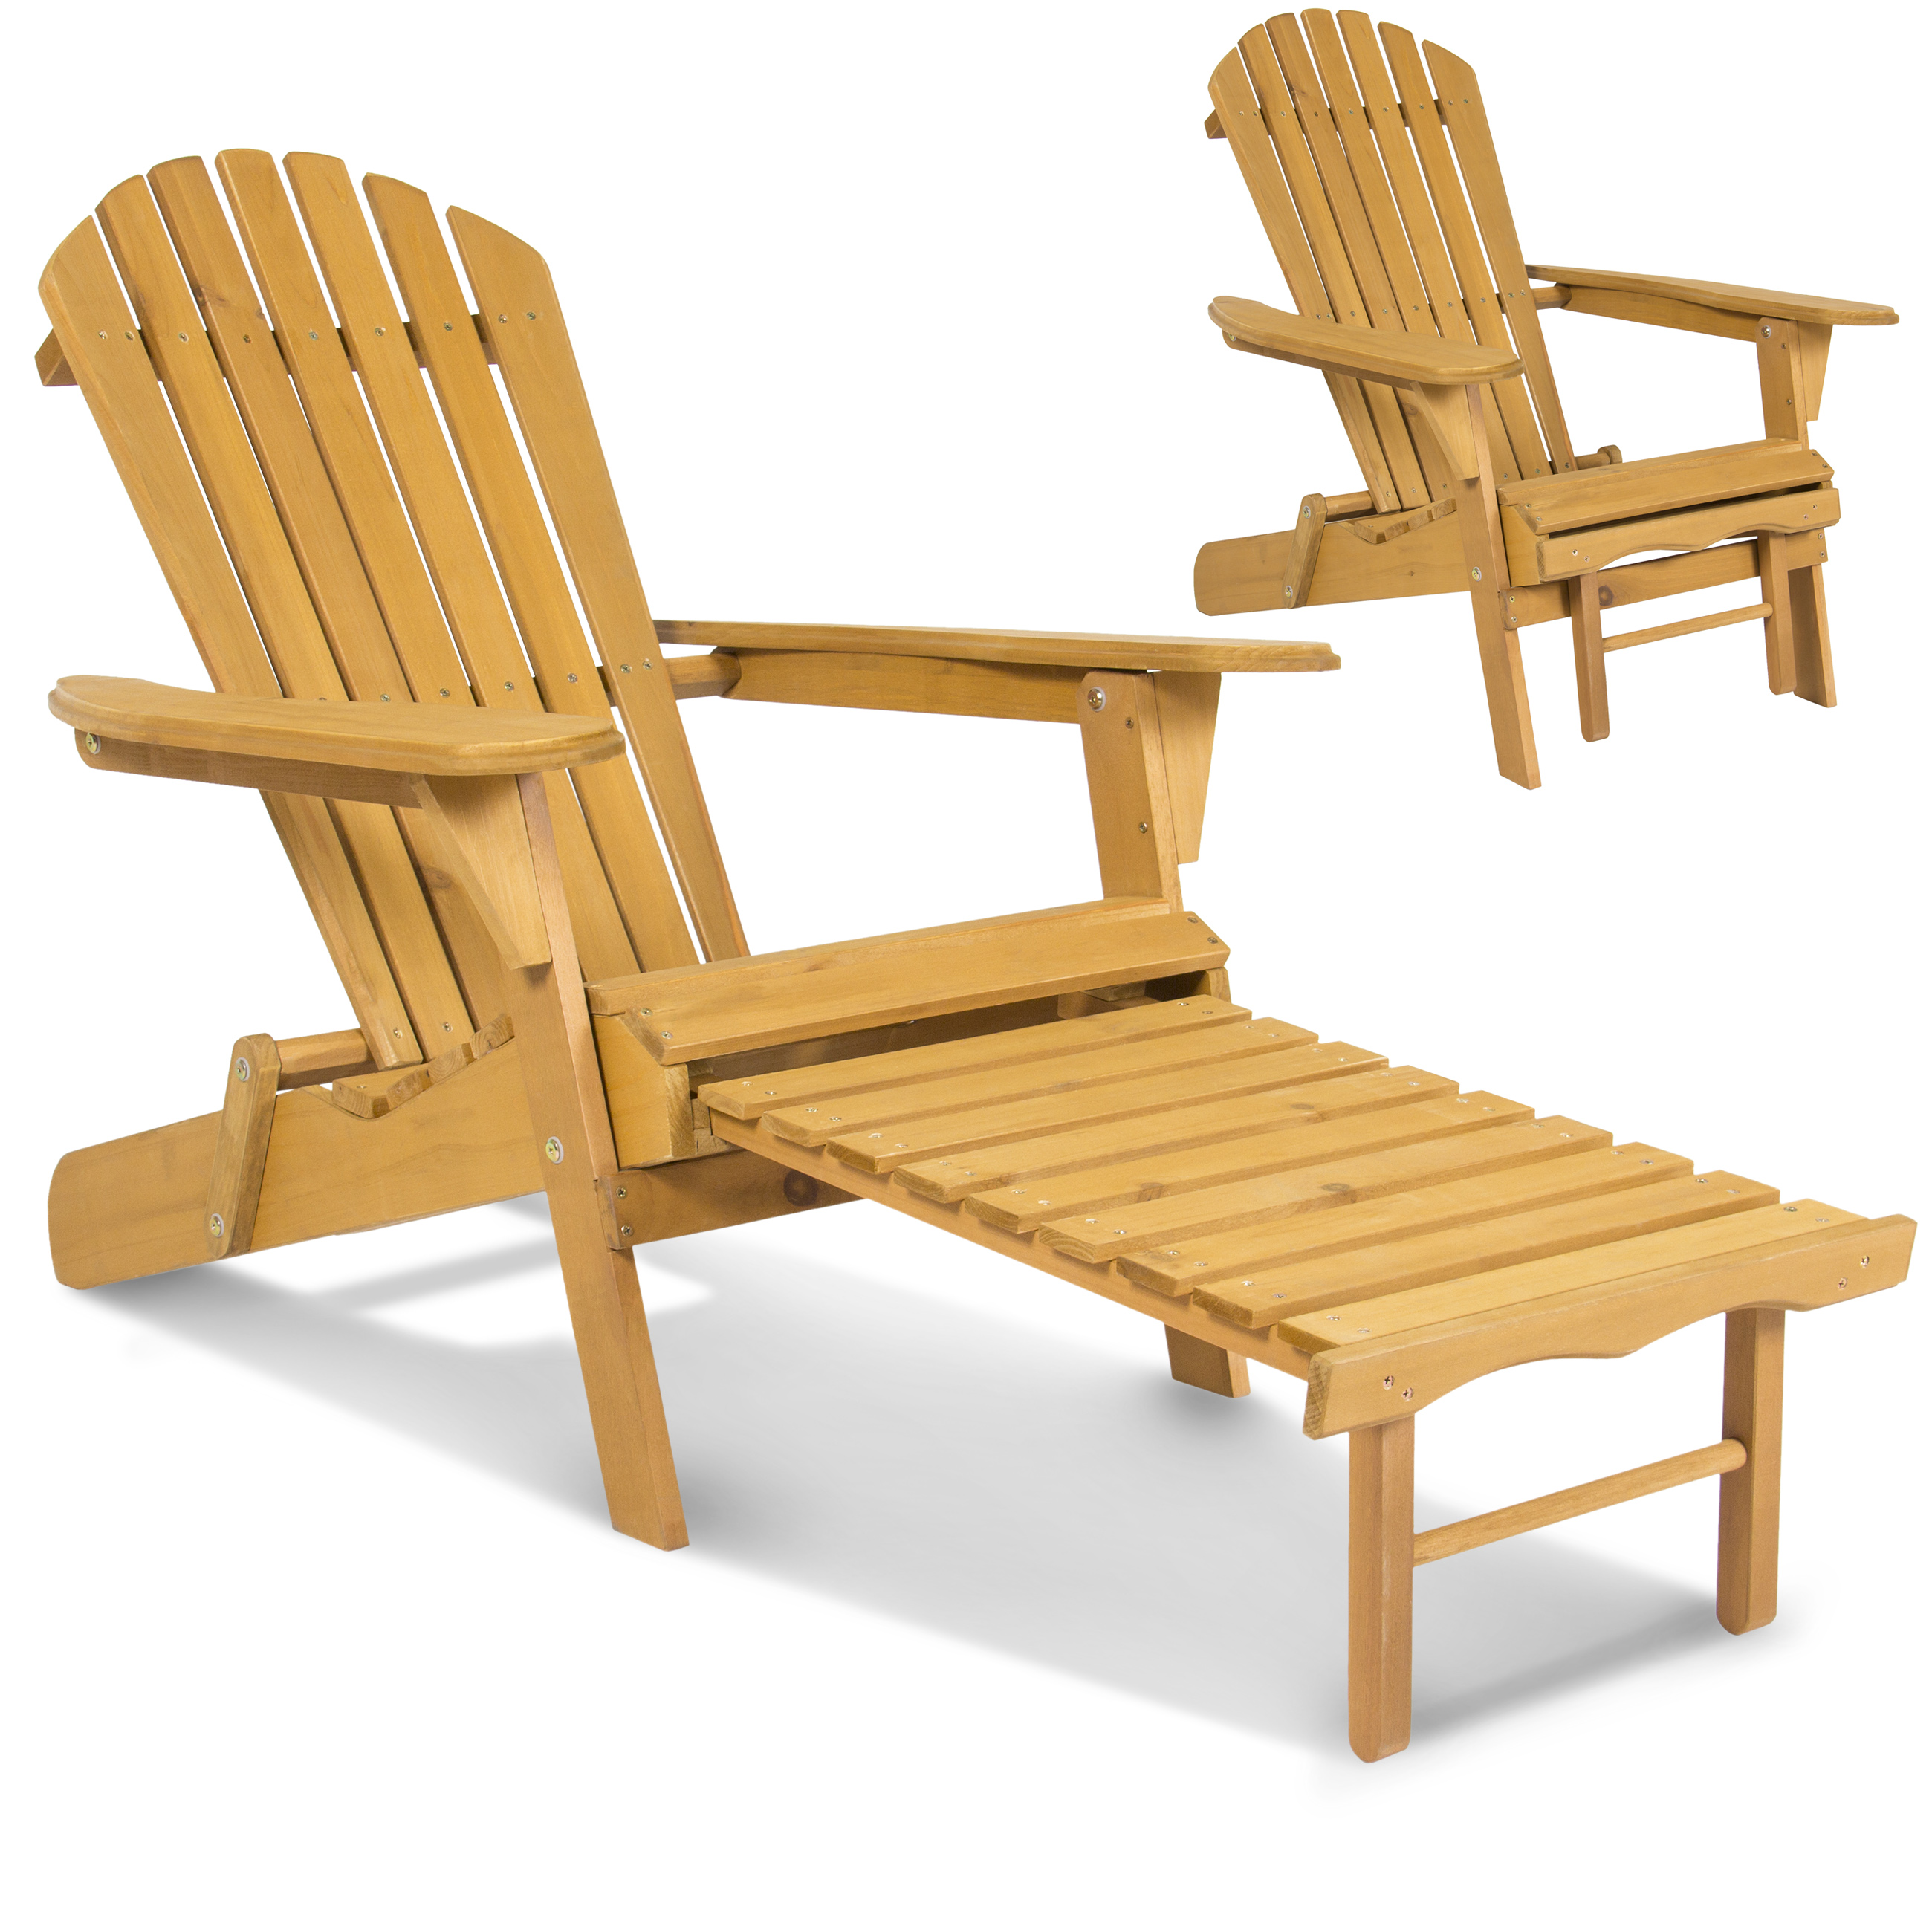 outdoor adirondack wood chair foldable w pull out ottoman patio deck furniture - Folding Chairs At Walmart